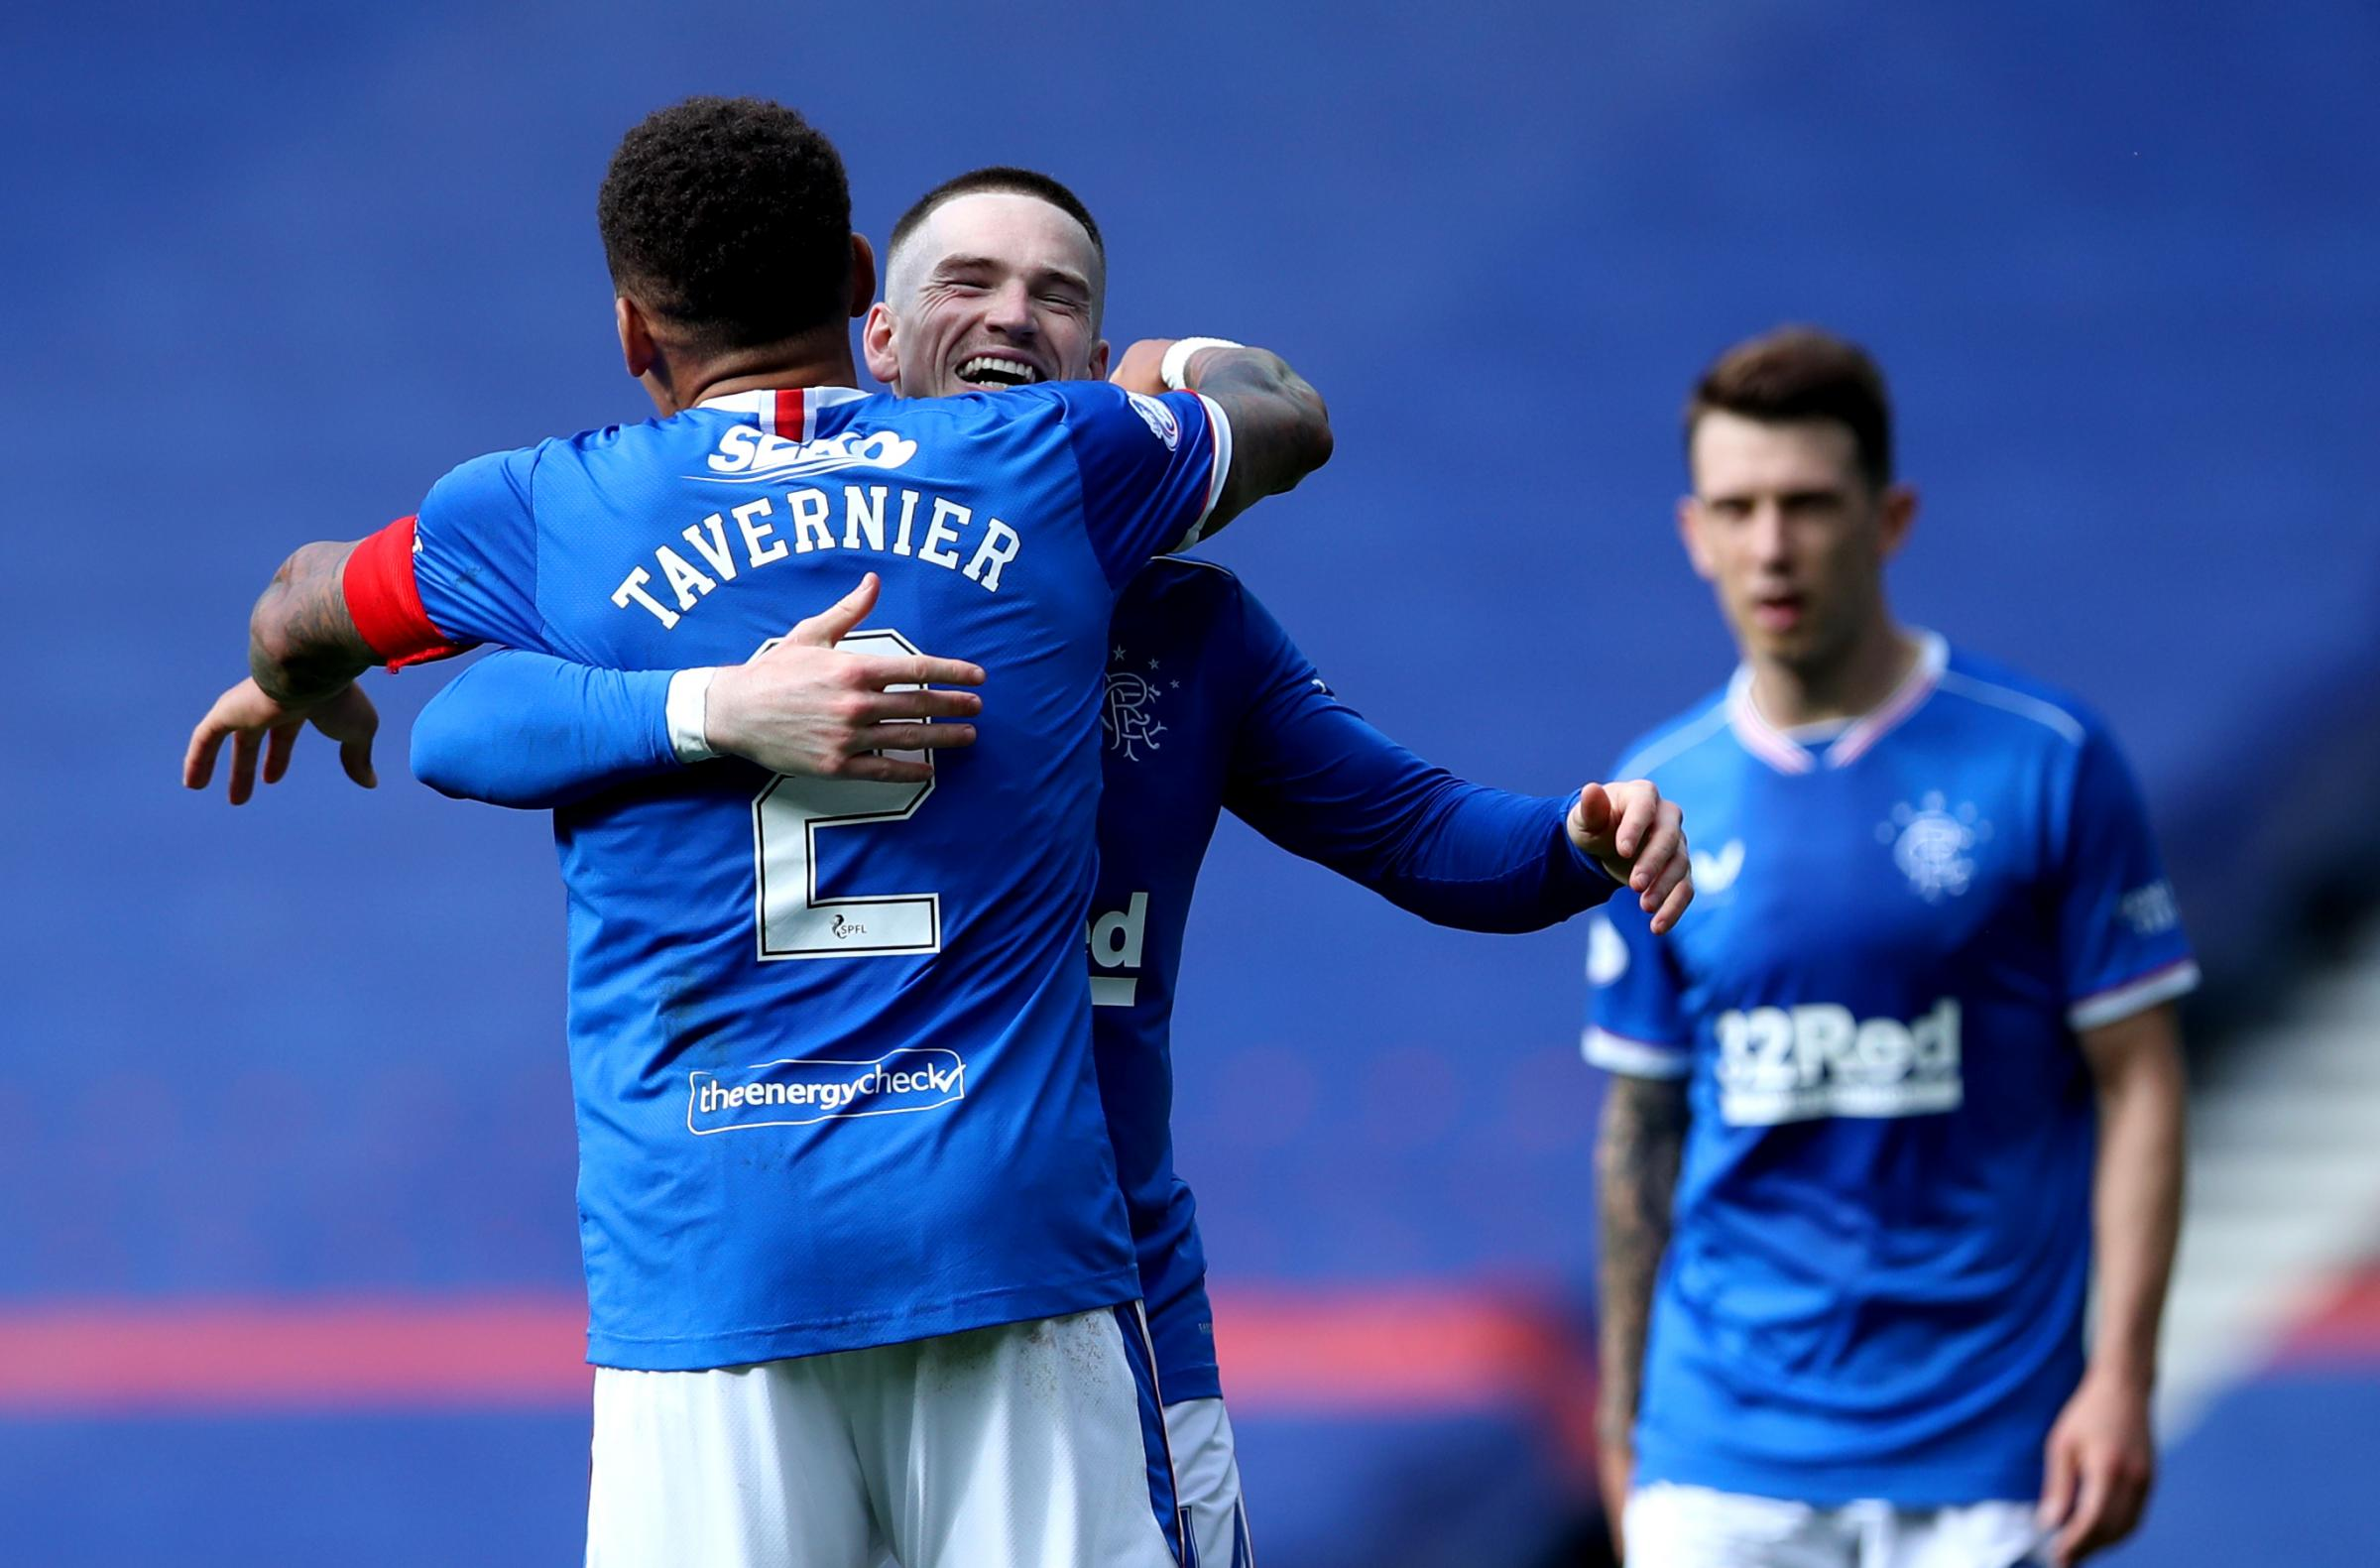 Rangers 2-0 Kilmarnock   Player ratings as Light Blues cruise past visitors in Ibrox win